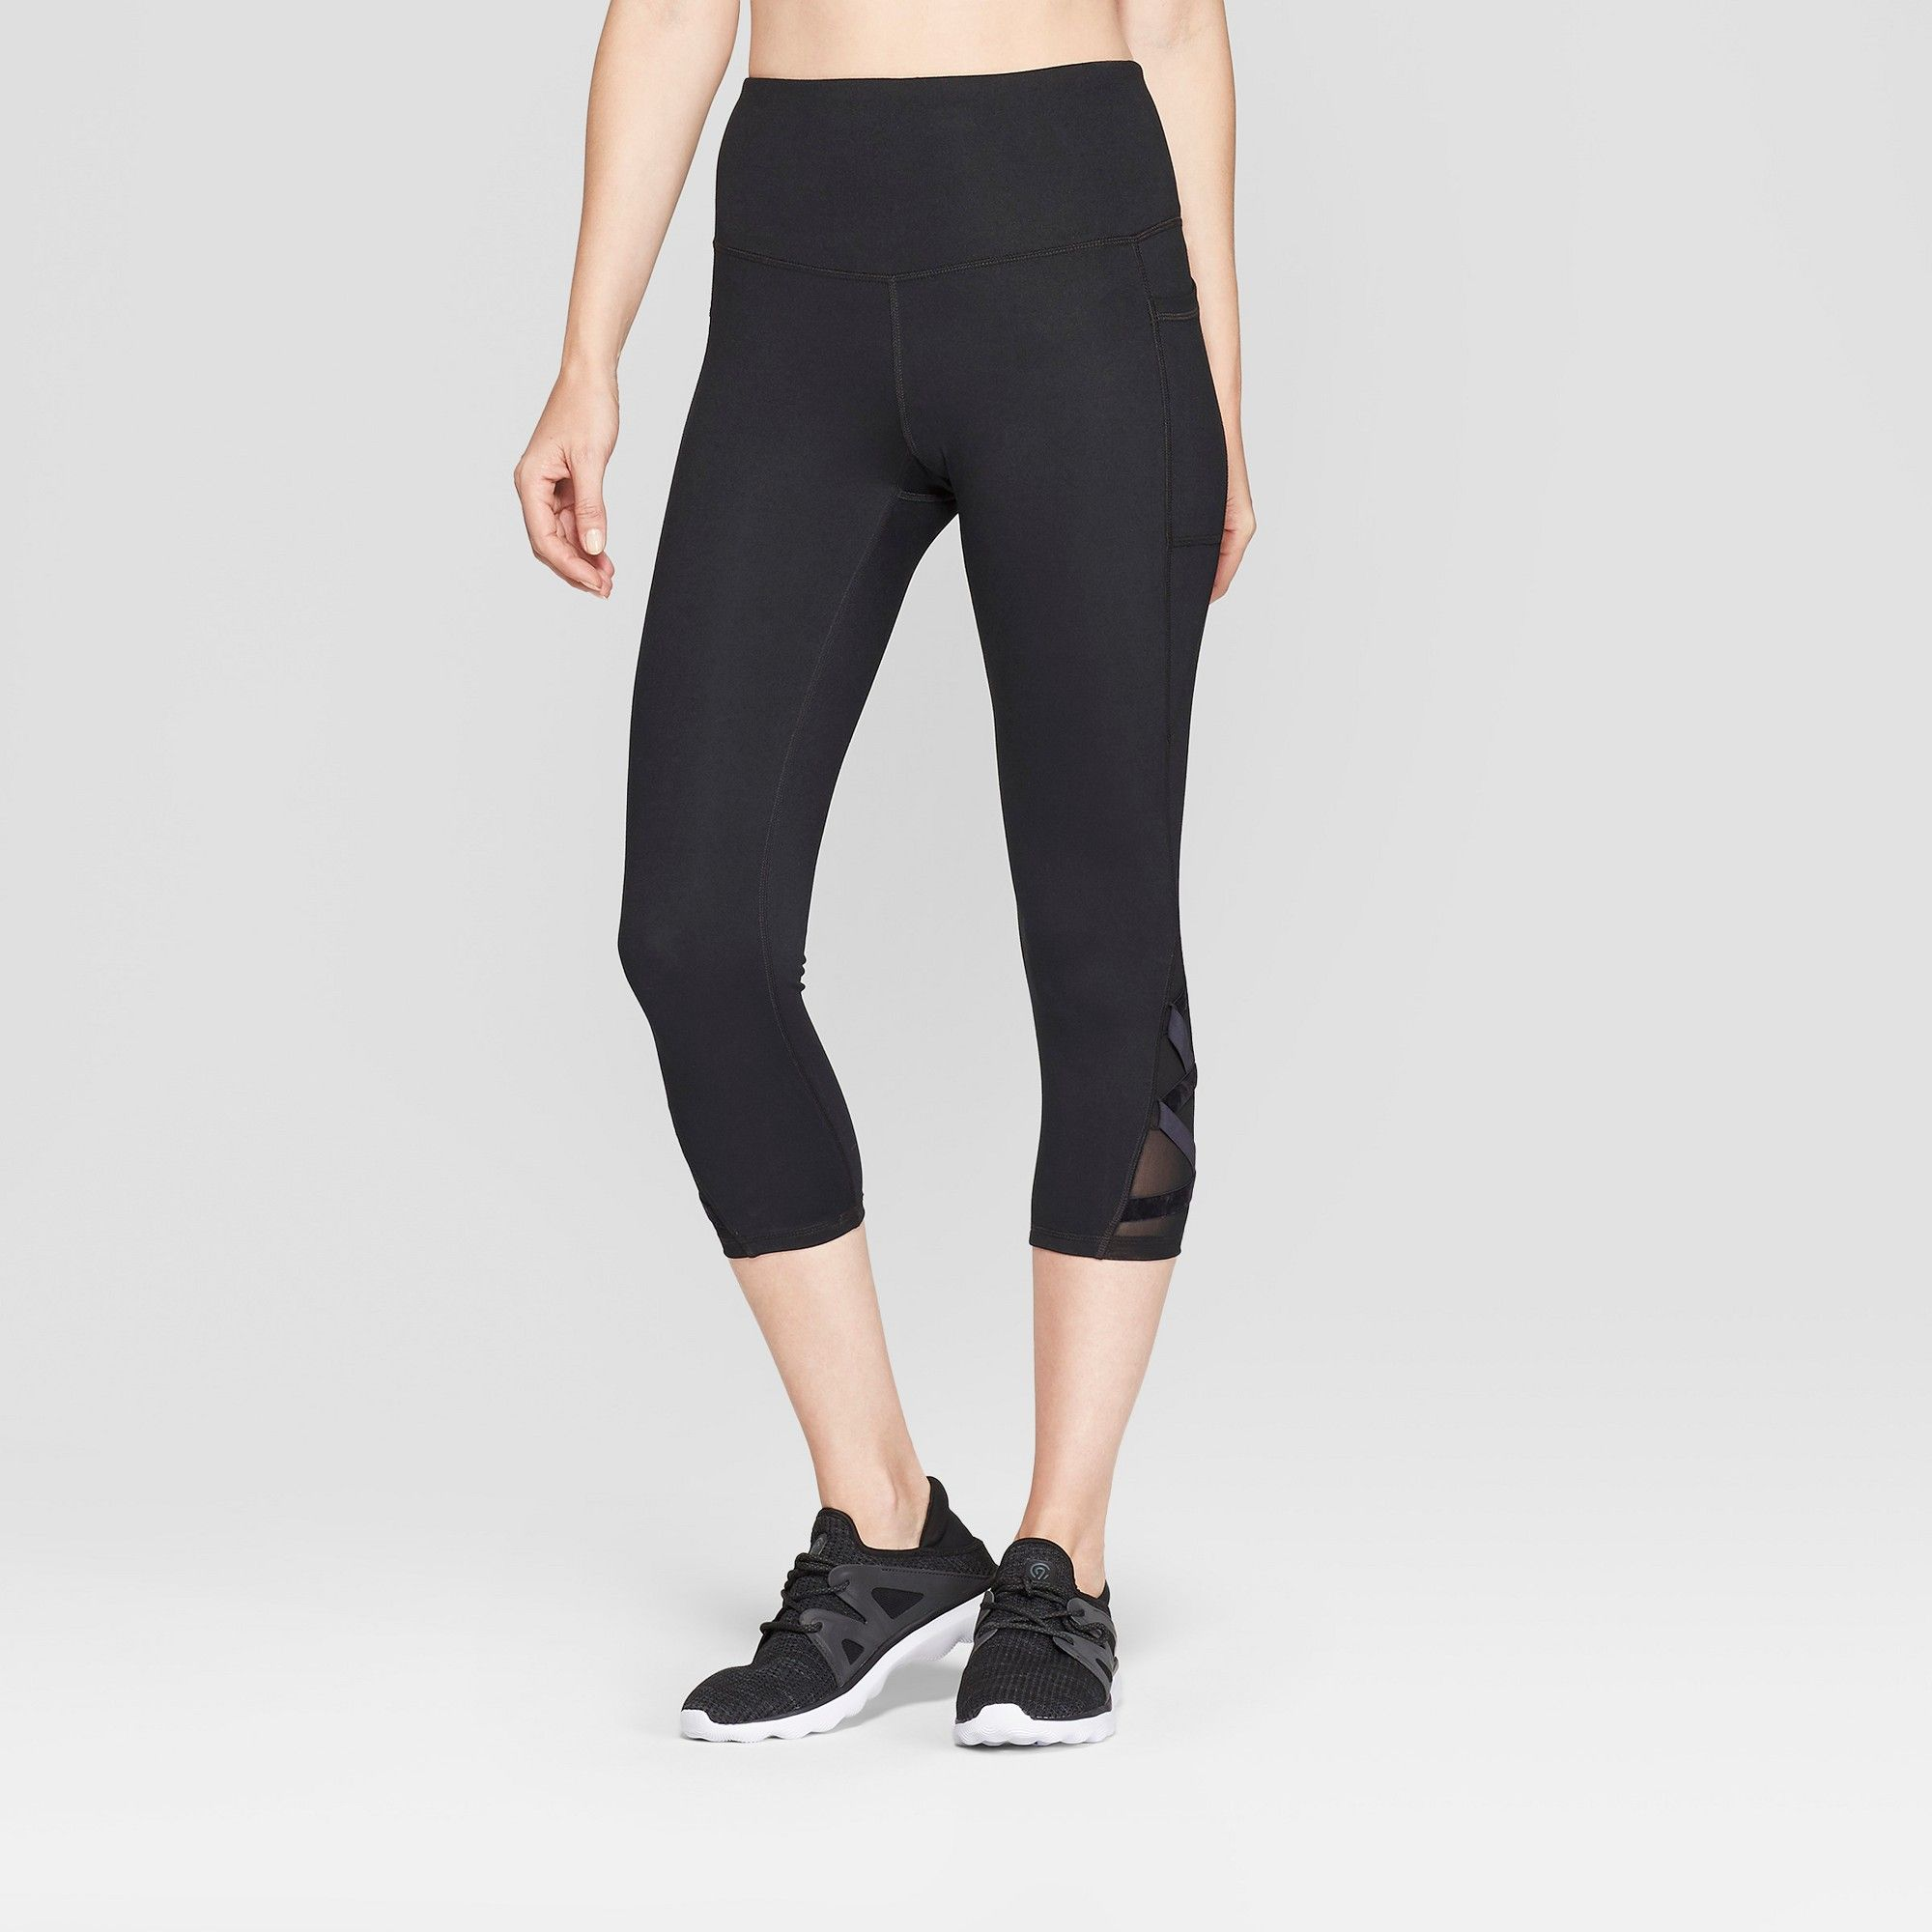 272d5c15263c Women s Studio High-Waisted Capri Leggings - C9 Champion Black XL ...